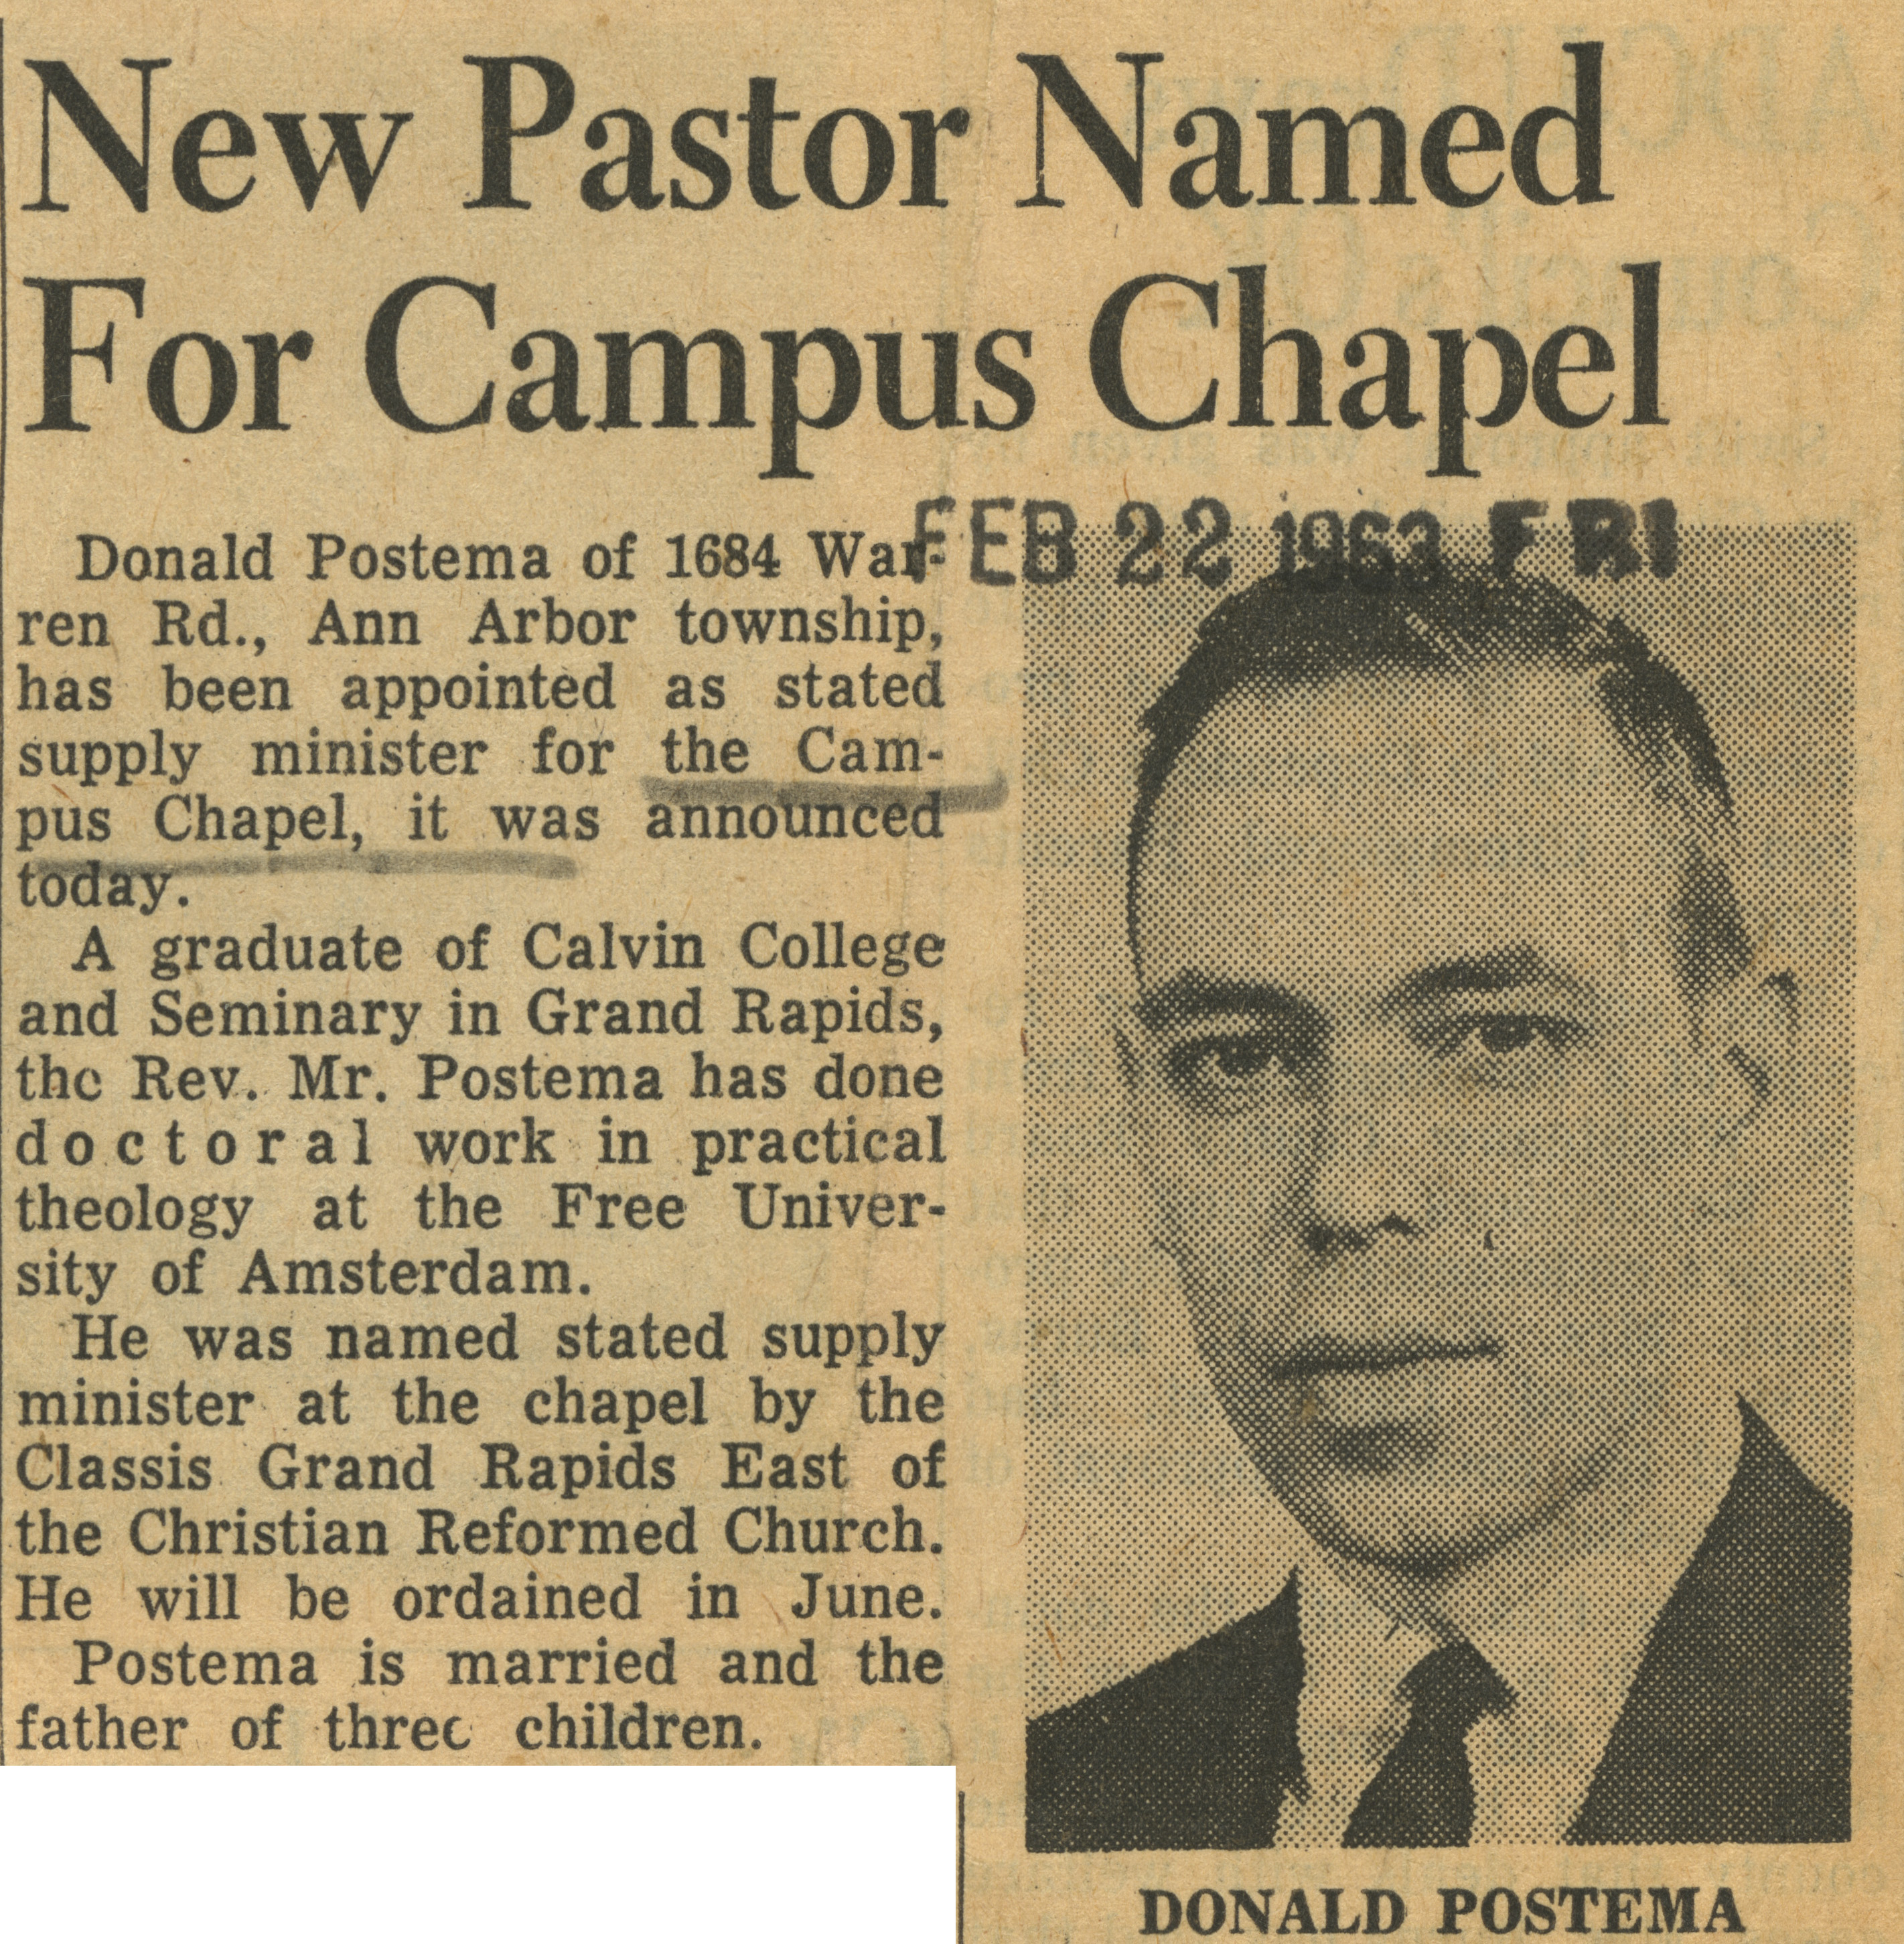 New Pastor Named For Campus Chapel image